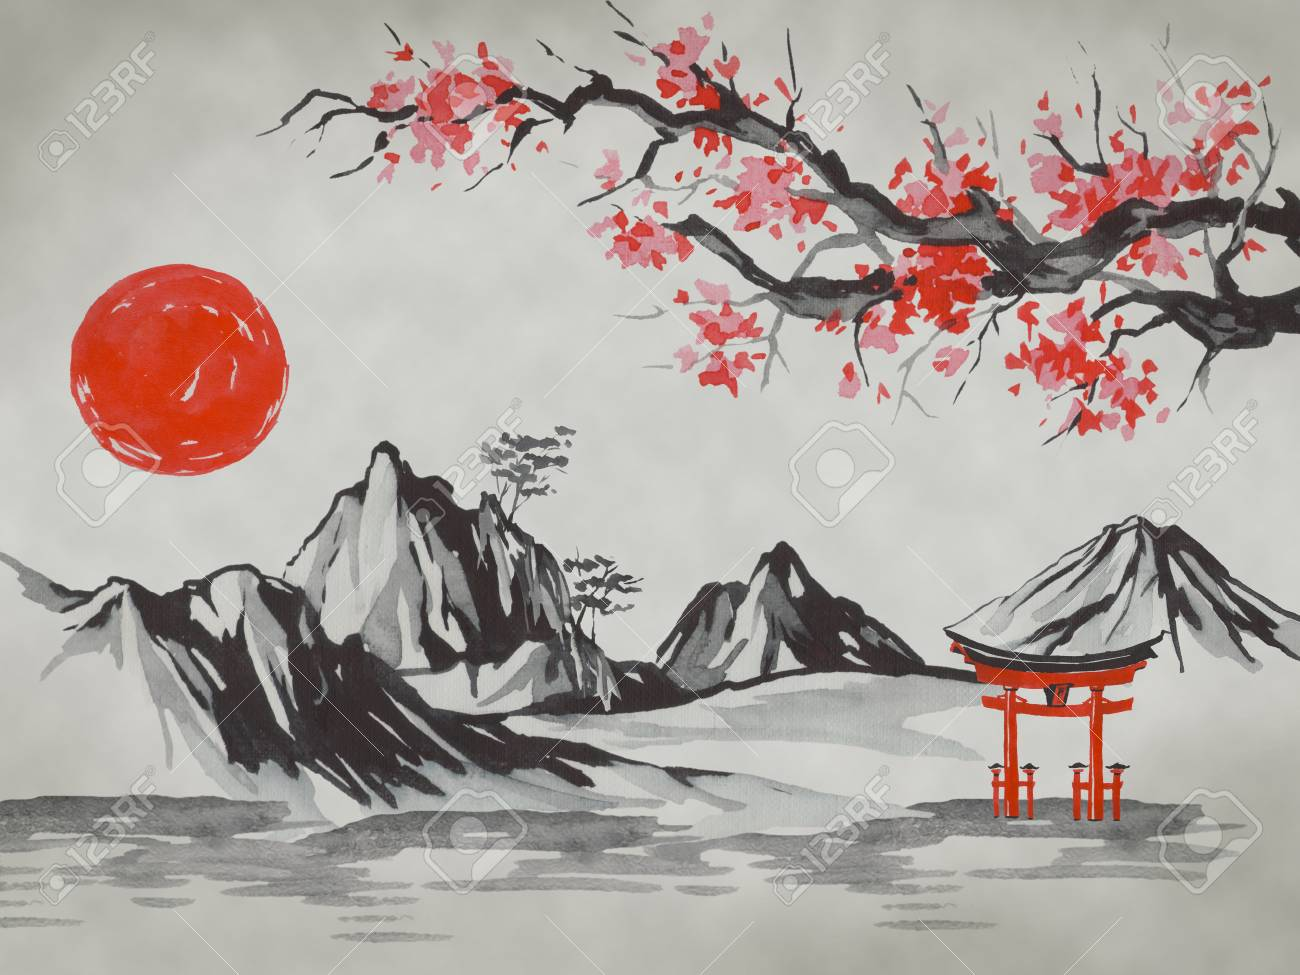 Japan Traditional Sumi E Painting Fuji Mountain Sakura Sunset Stock Photo Picture And Royalty Free Image Image 116756041